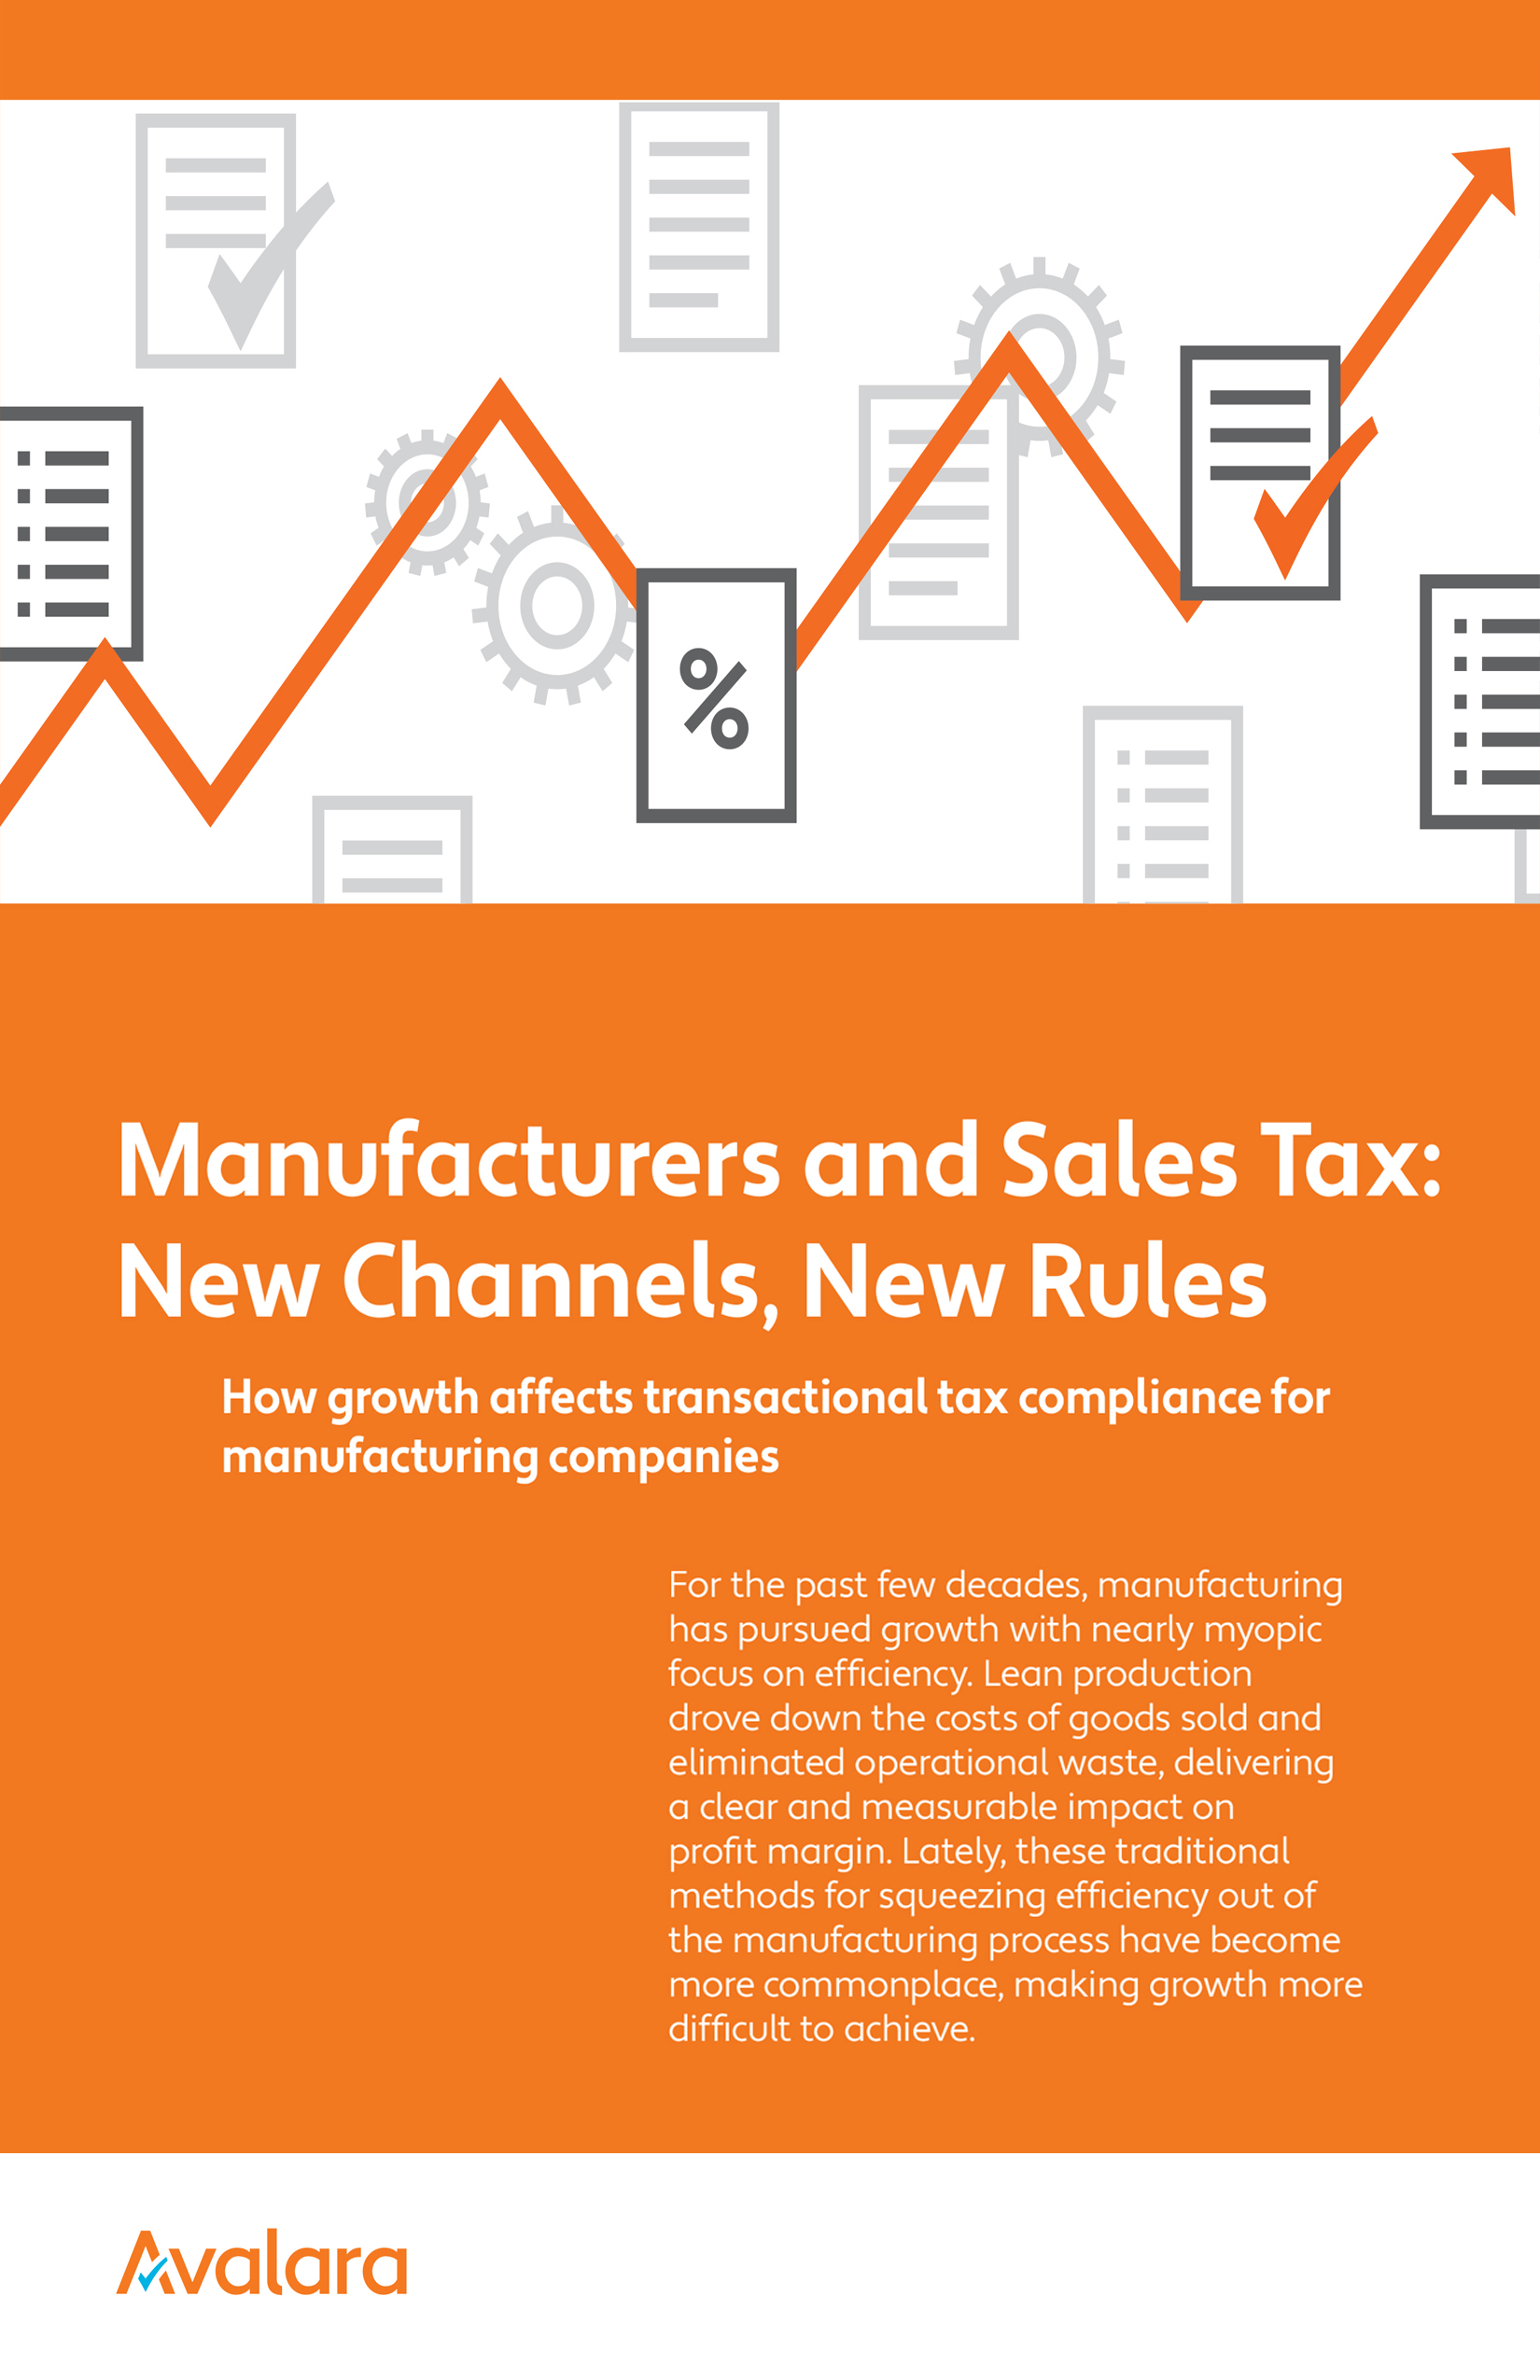 AVALARA Manufacturers and Sales Tax:New Channels, New Rules -